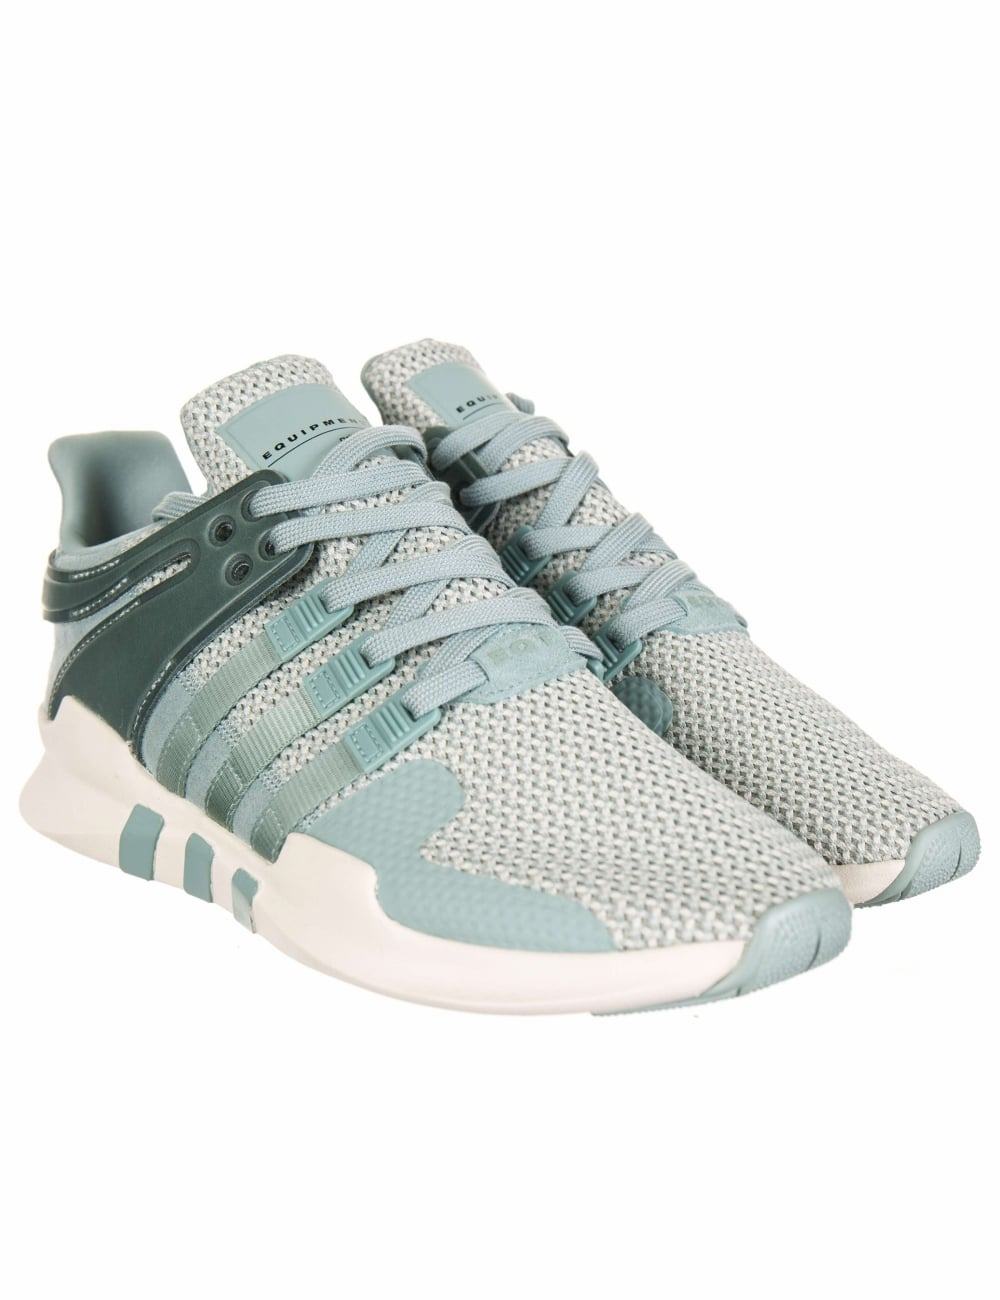 buy online 8b9f0 e7348 EQT Support Advance Trainers - Tactile Green/Off White (BA7580)